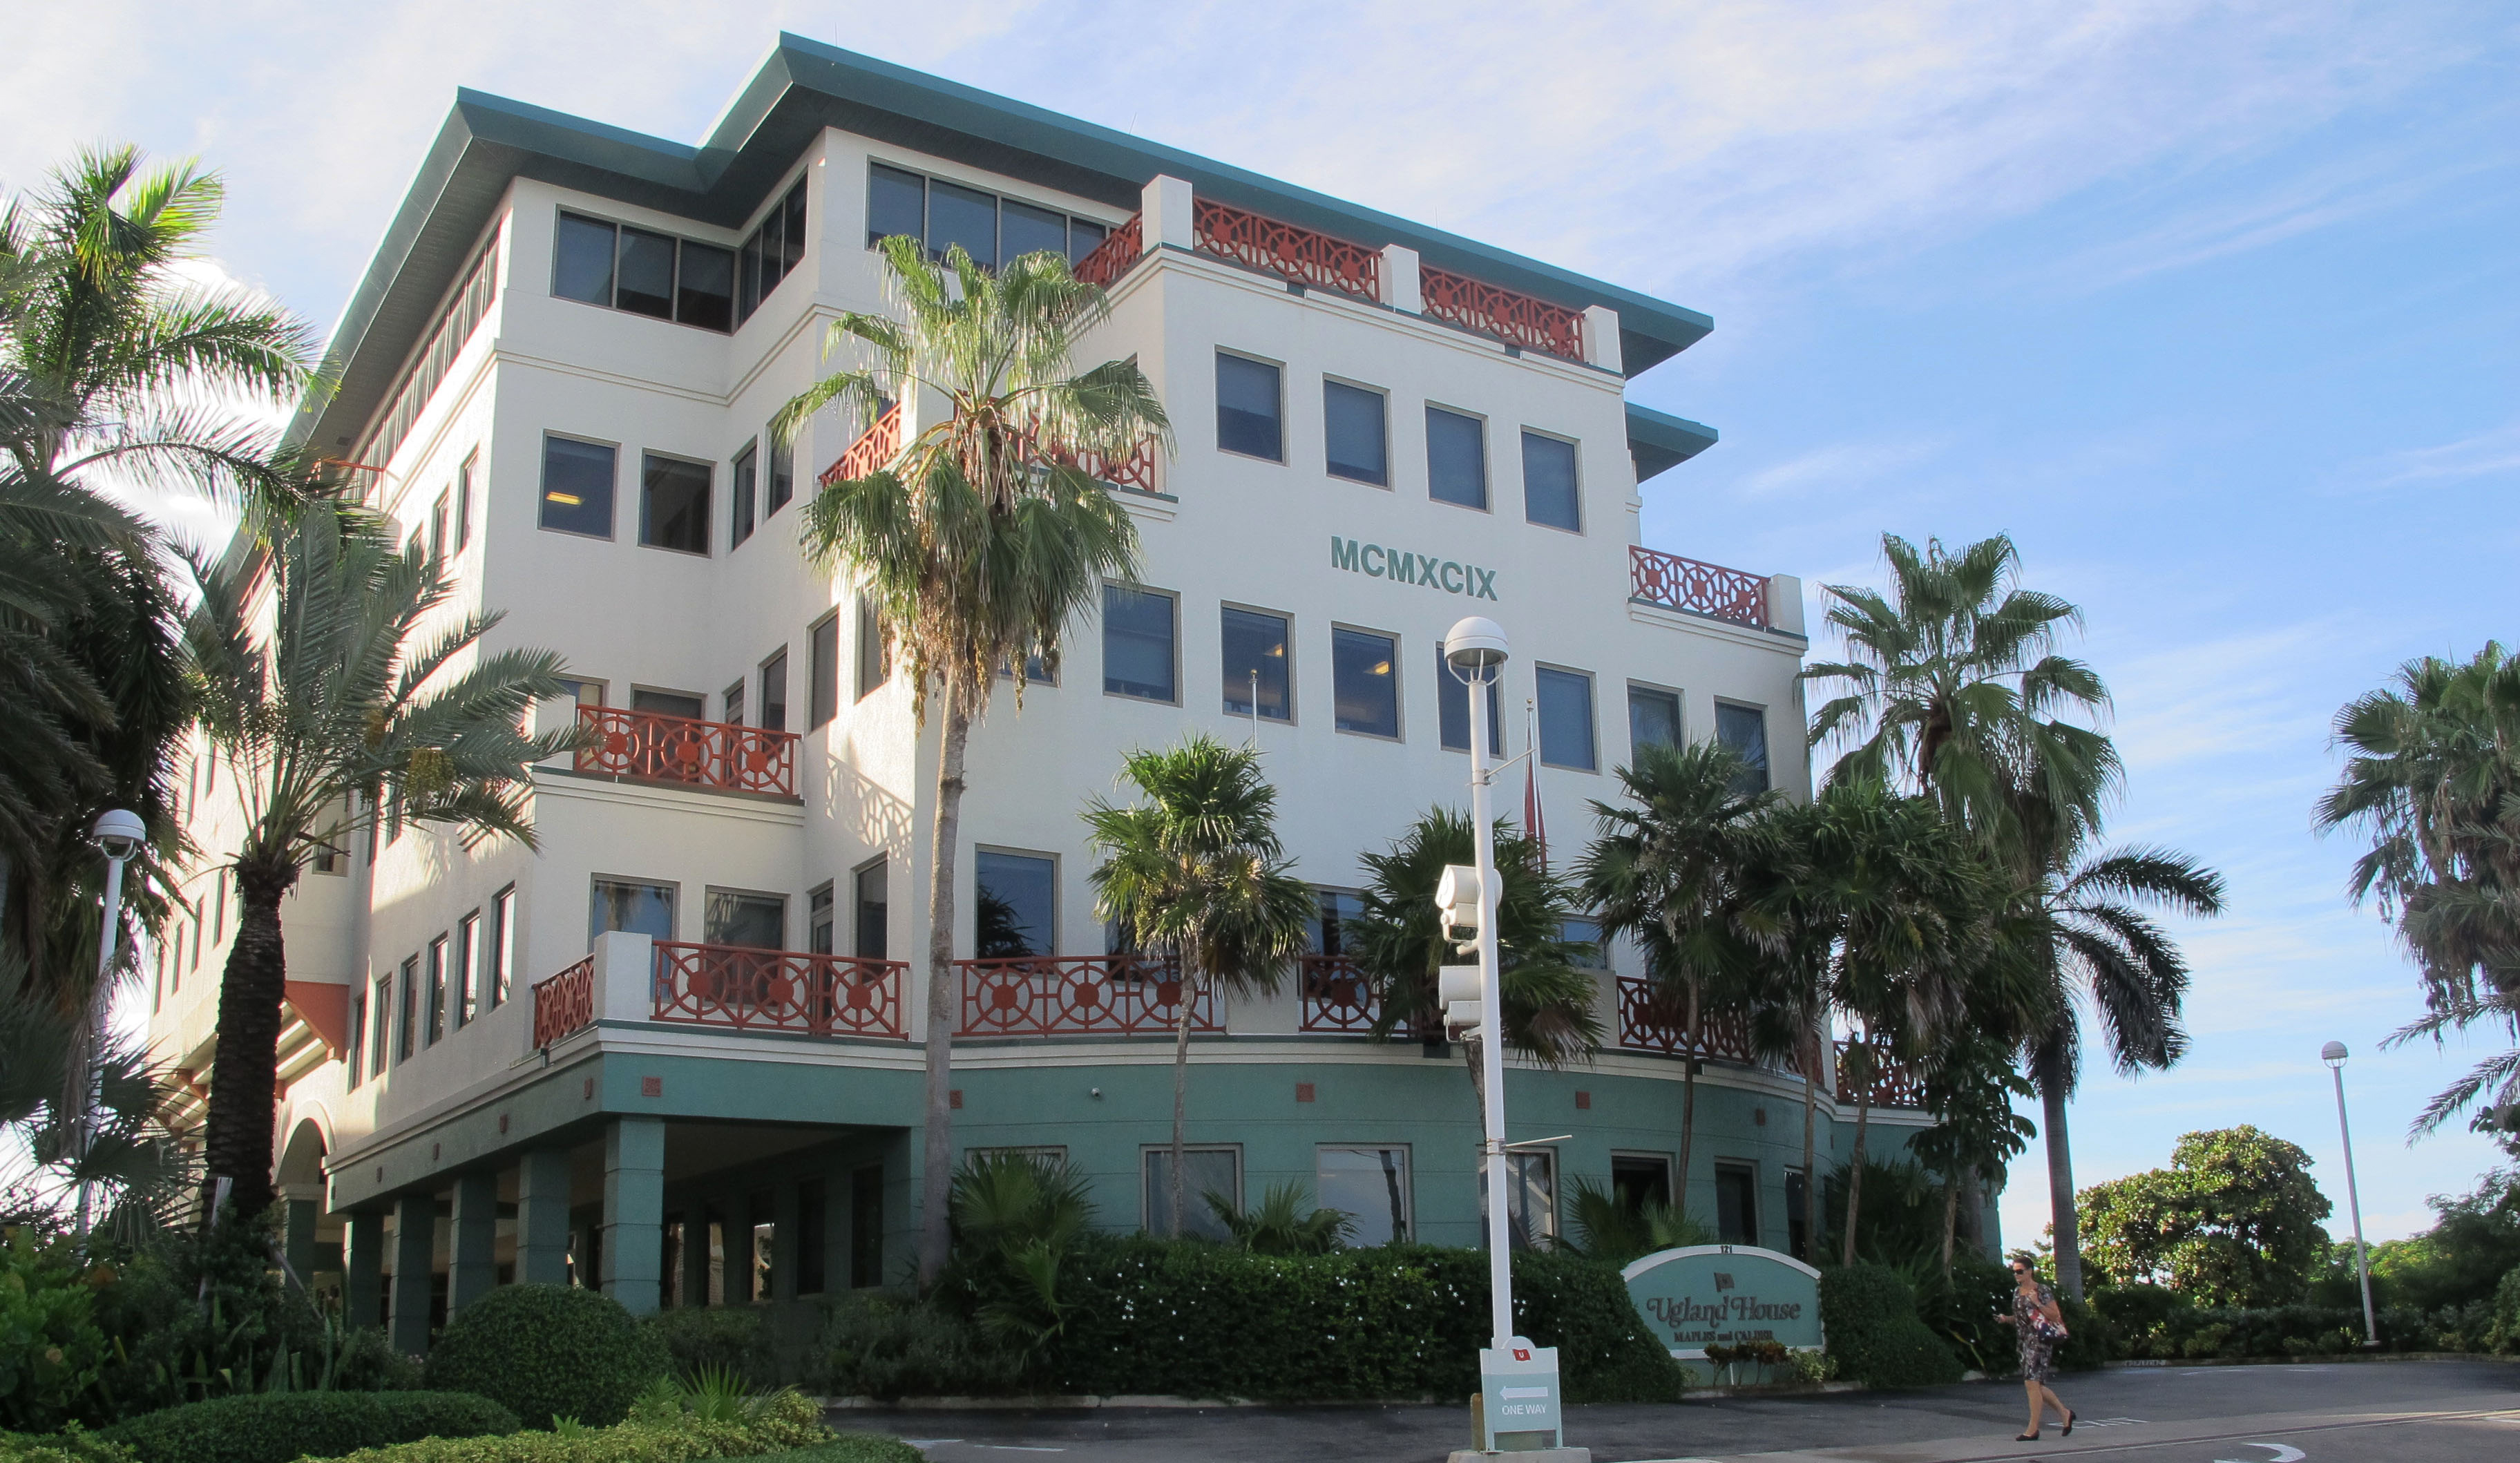 The Ugland House In George Town On Grand Cayman Island Is The Registered  Office For Thousands